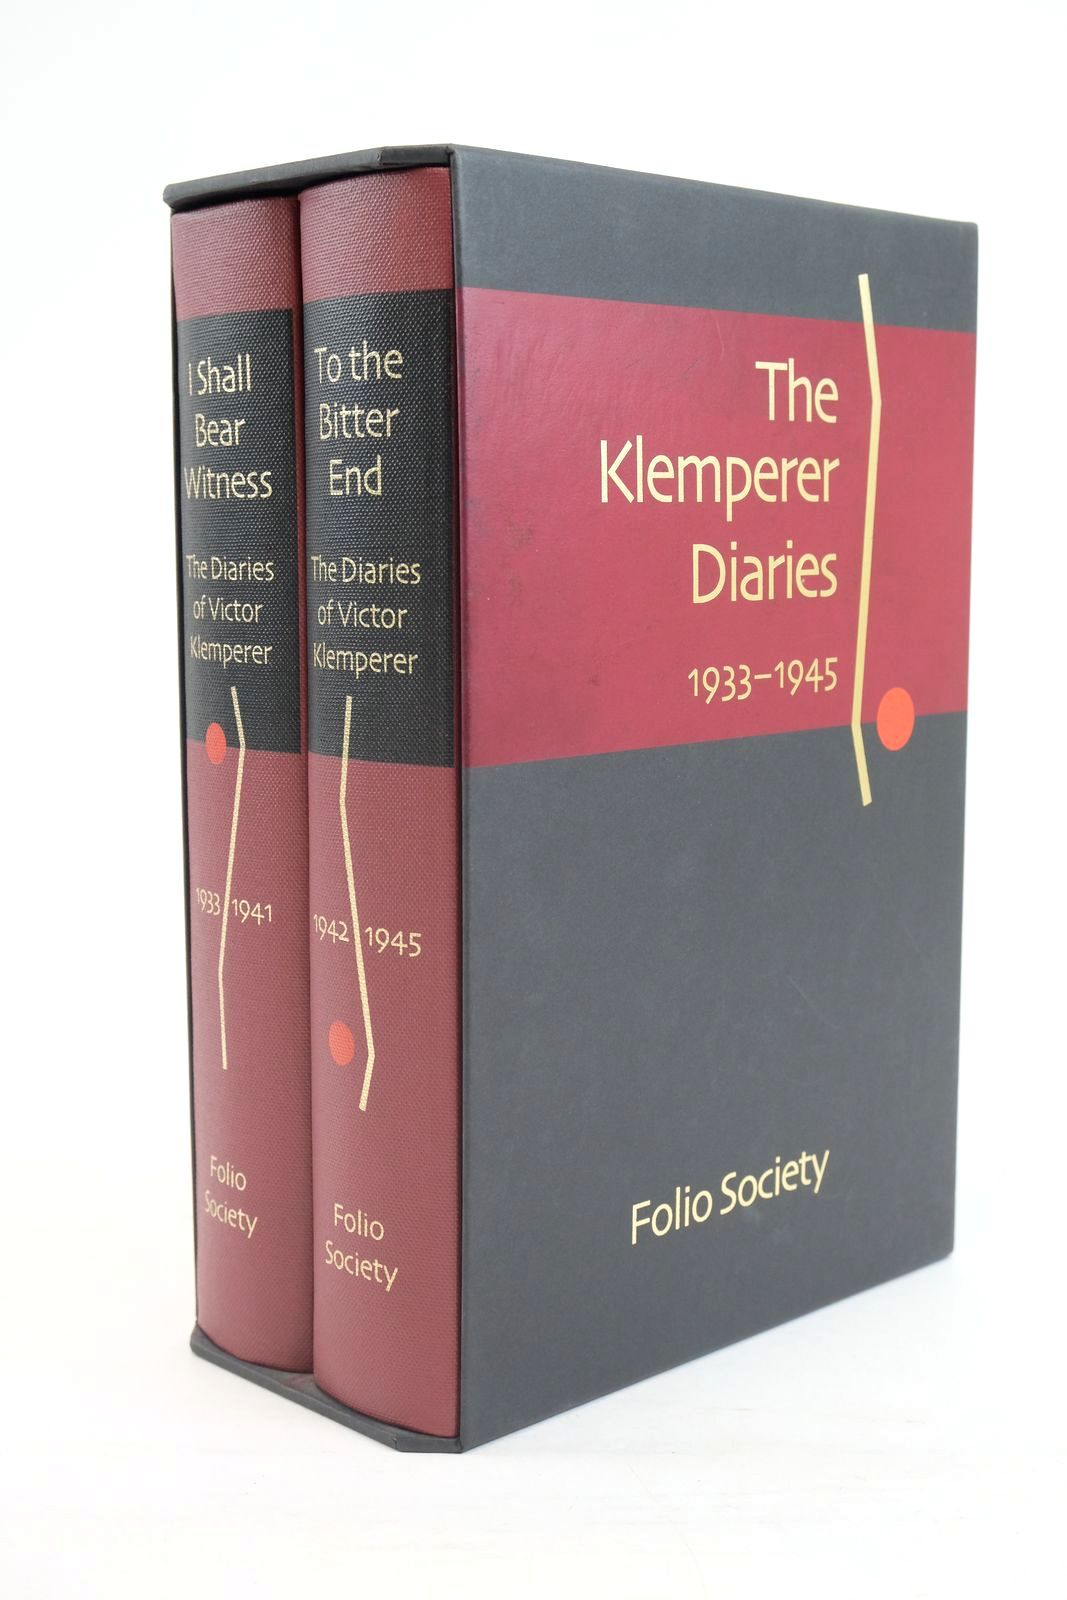 Photo of THE DIARIES OF VICTOR KLEMPERER (2 VOLUMES) written by Klemperer, Victor published by Folio Society (STOCK CODE: 1320132)  for sale by Stella & Rose's Books